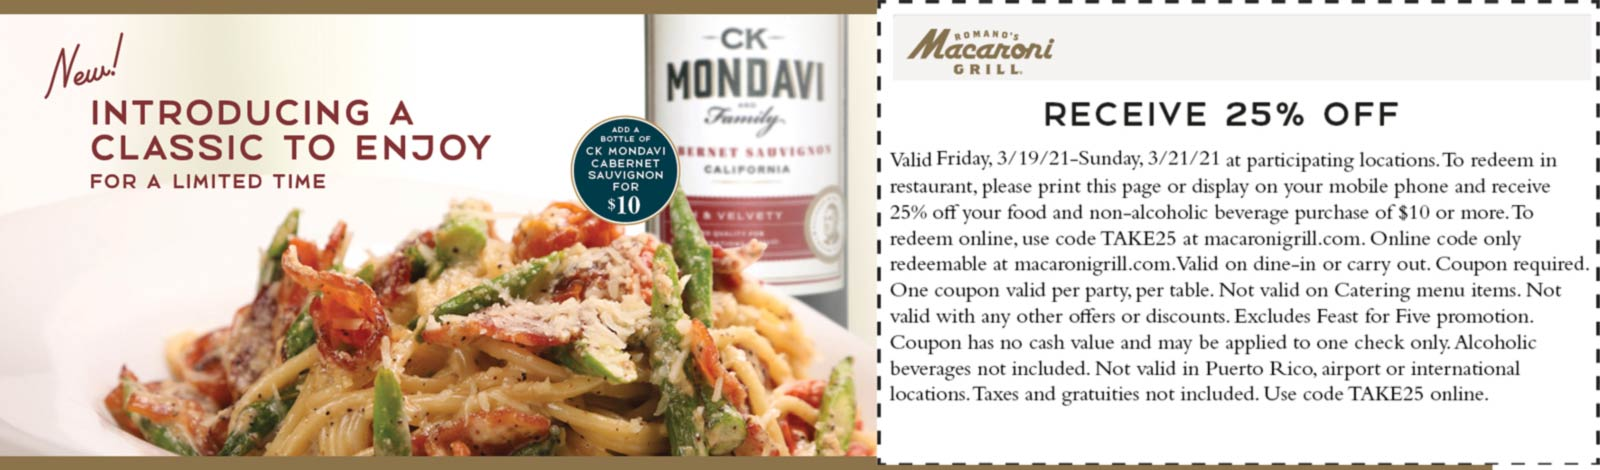 Macaroni Grill restaurants Coupon  25% off at Macaroni Grill restaurants #macaronigrill